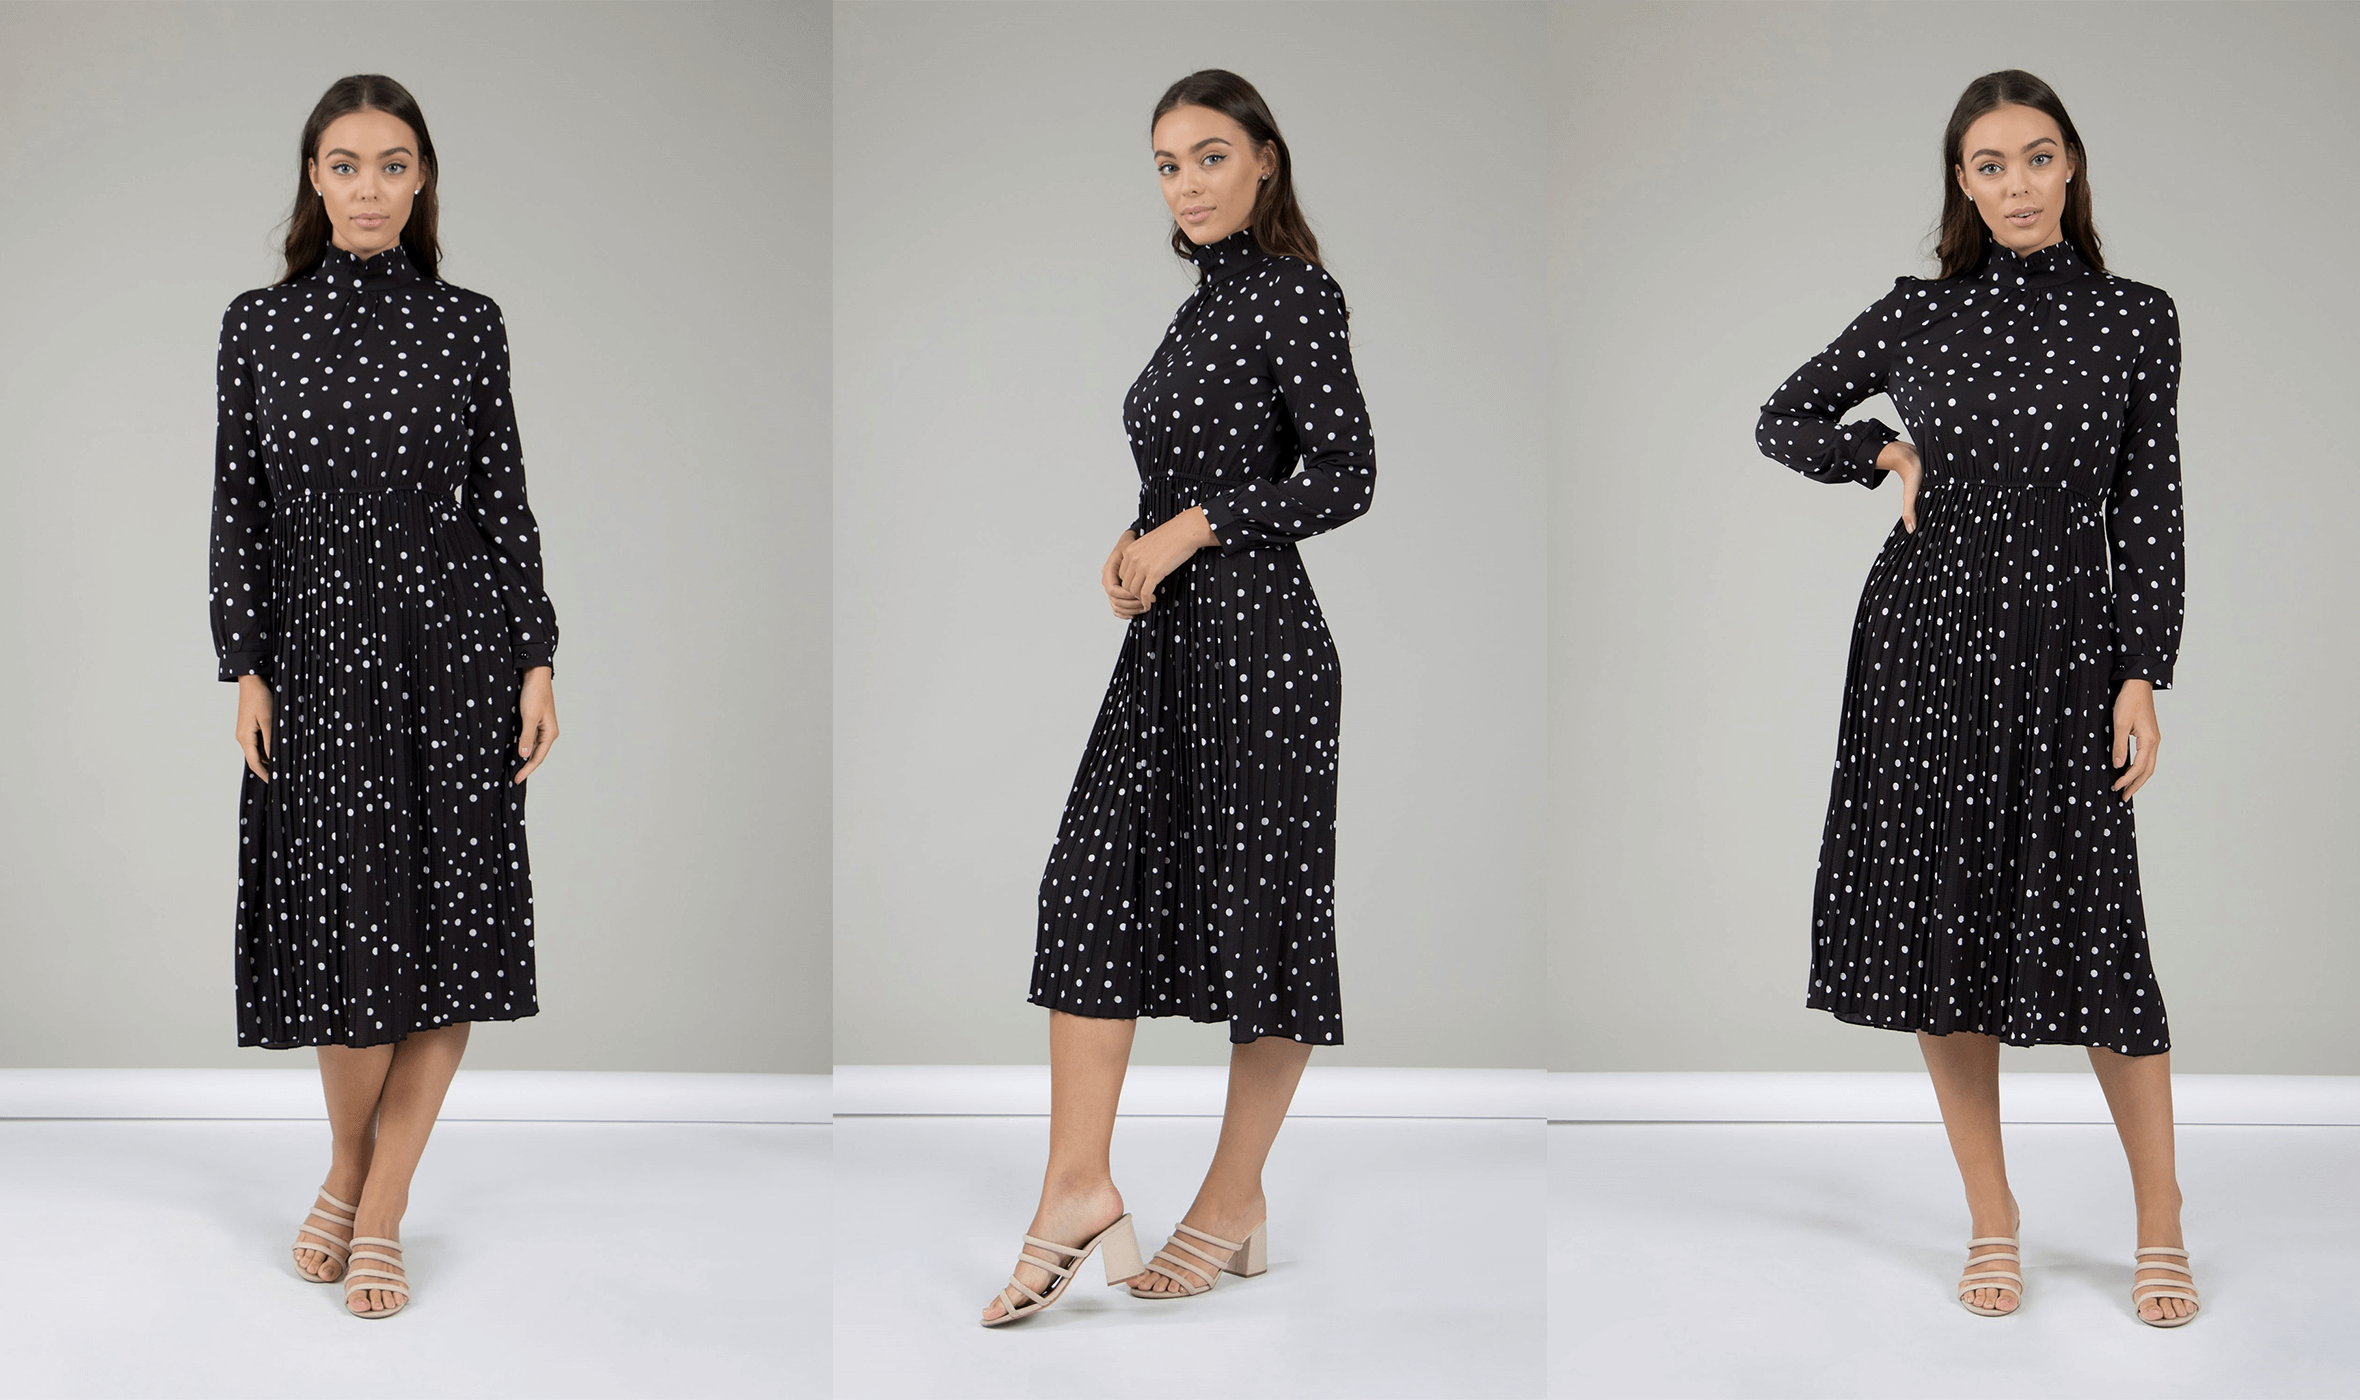 How To Get The Most Wear From Your Dresses - Polka Dot Pleated Dress | Femme Connection